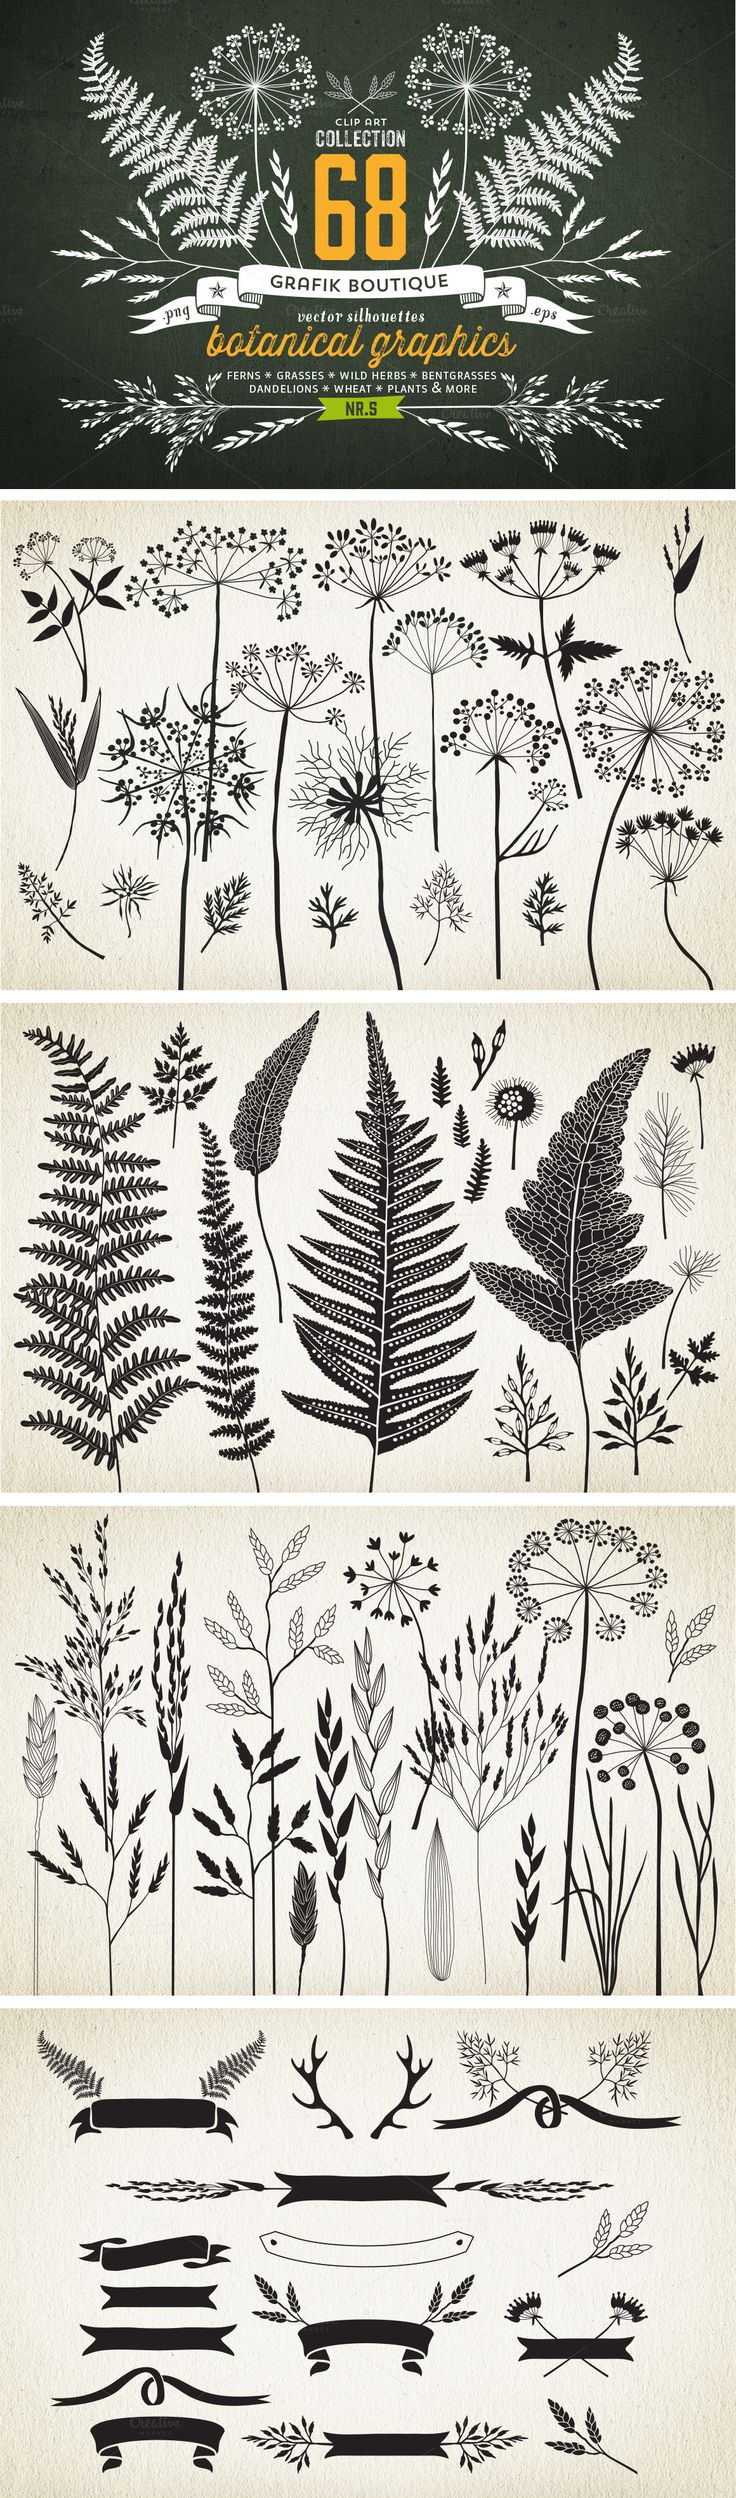 Botanical element illustrations... *IDEA* try printing to give a sense of surroundings? or layering in lively scrapbook format?